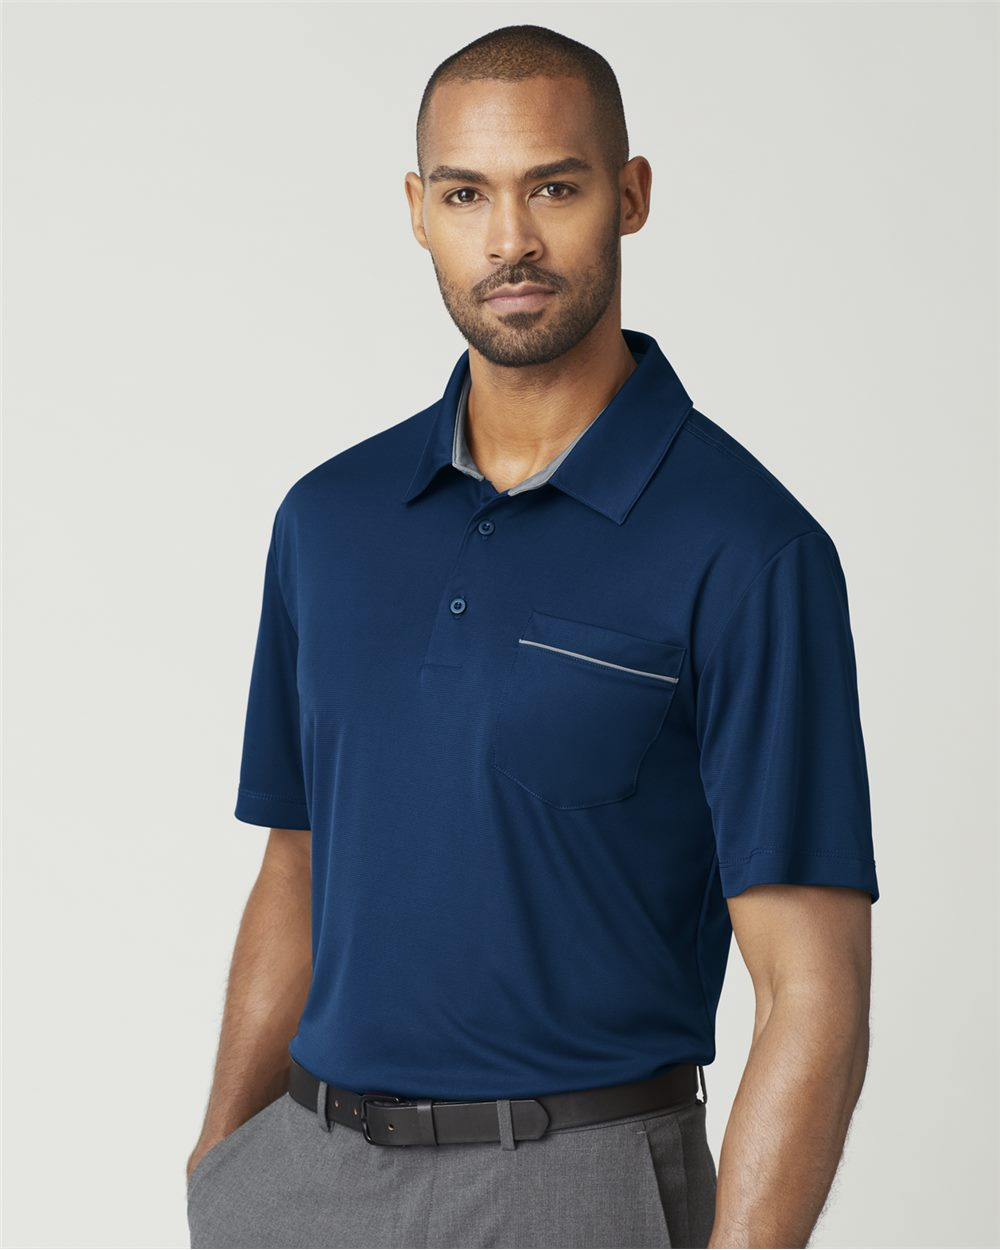 Prim + Preux 1999 - Dynamic Pocket Polo